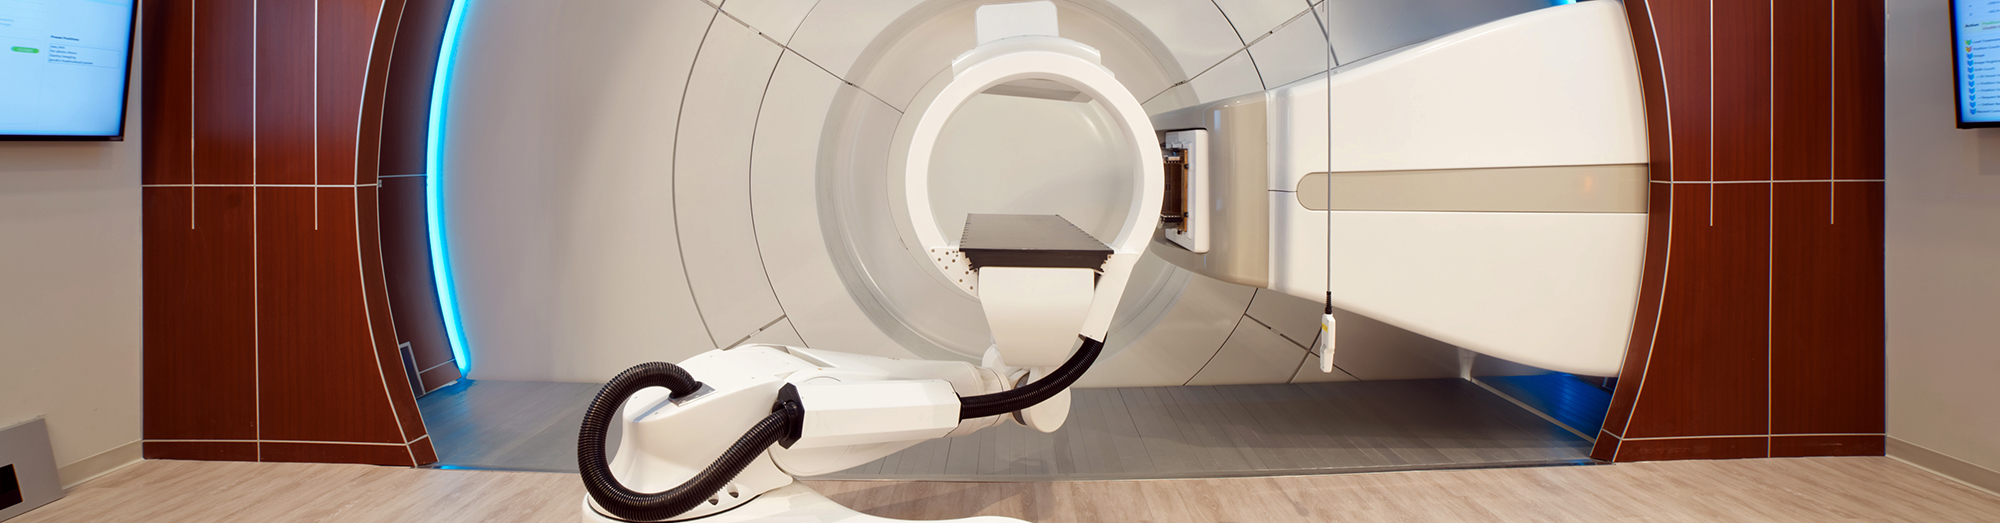 Proton therapy cancer treatment significantly lowers the risk of second cancer compared to IMRT and 3DCRT